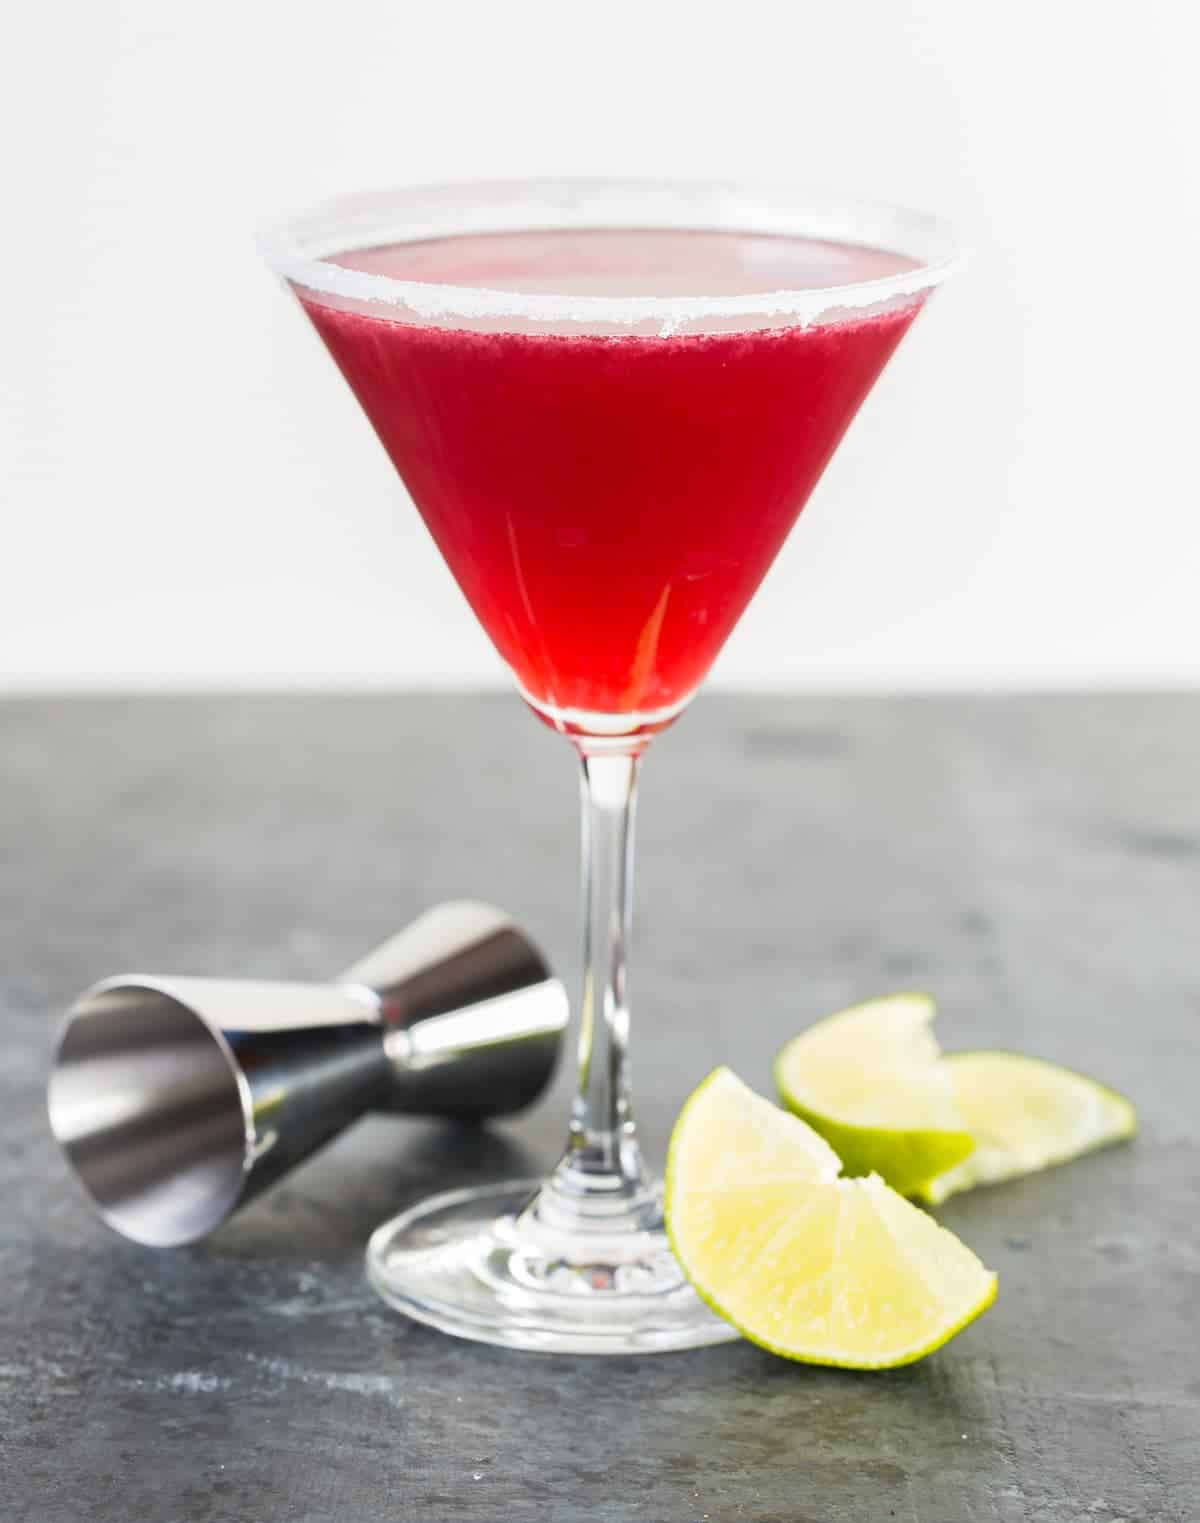 Calling all tequila lovers! Add some new life to your Pomegranate Martini recipe by swapping the vodka for tequila. You can thank me later.